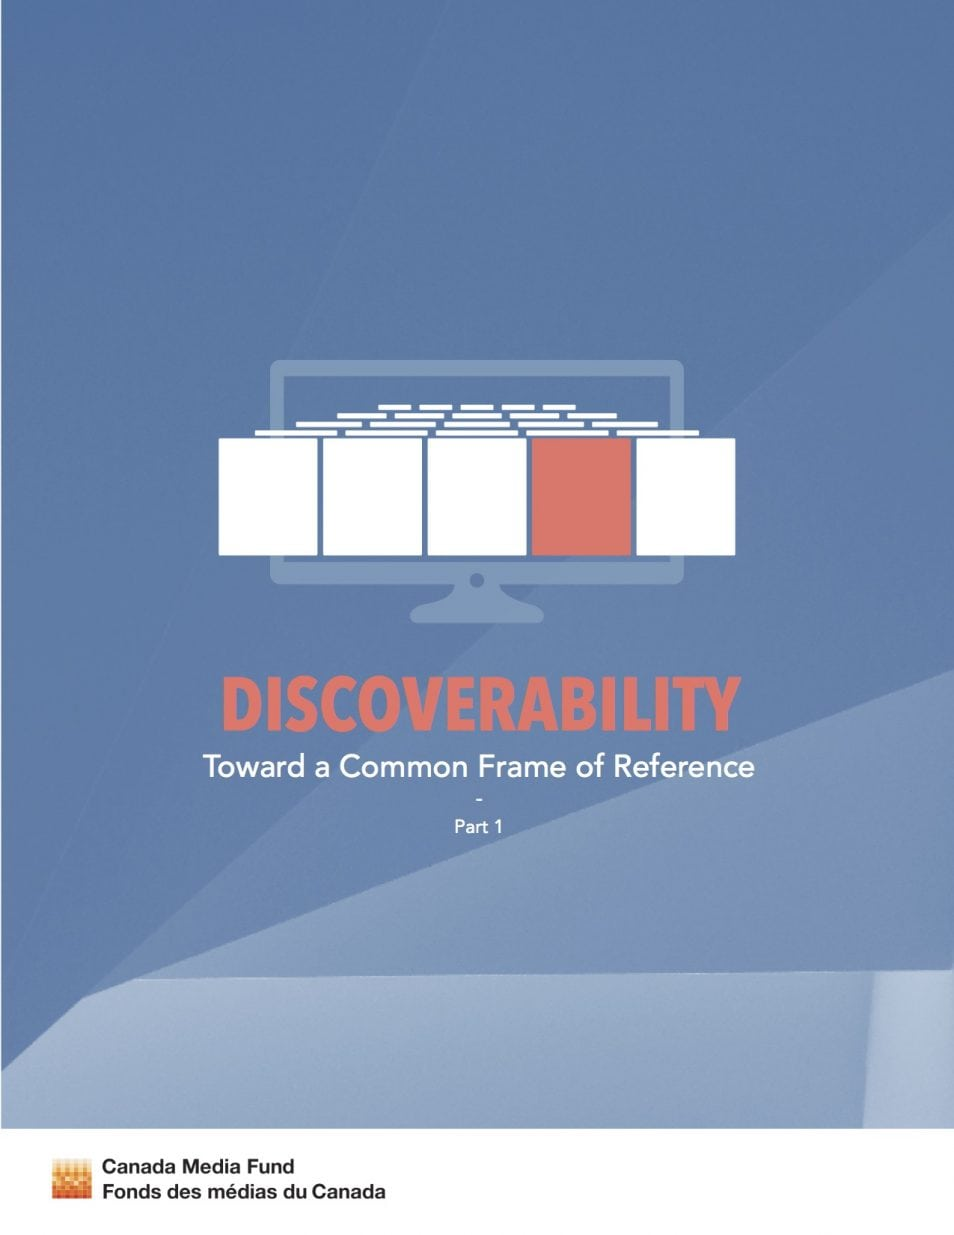 cmf-discoverability-toward-common-frame-reference-2016